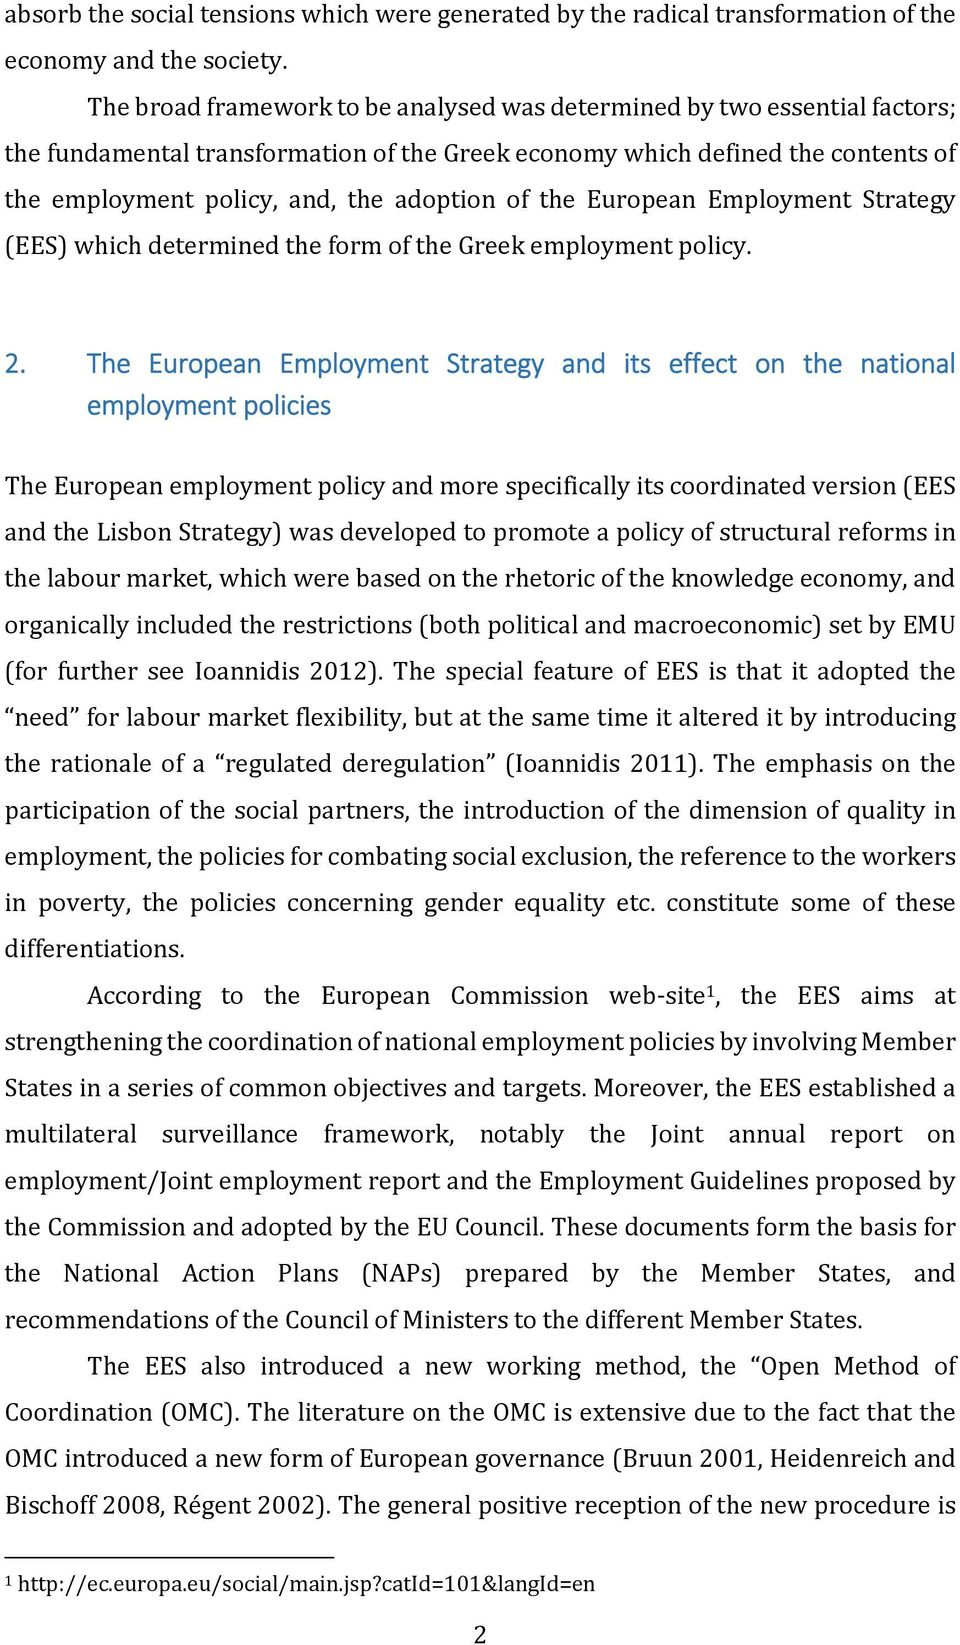 of the European Employment Strategy (EES) which determined the form of the Greek employment policy. 2.